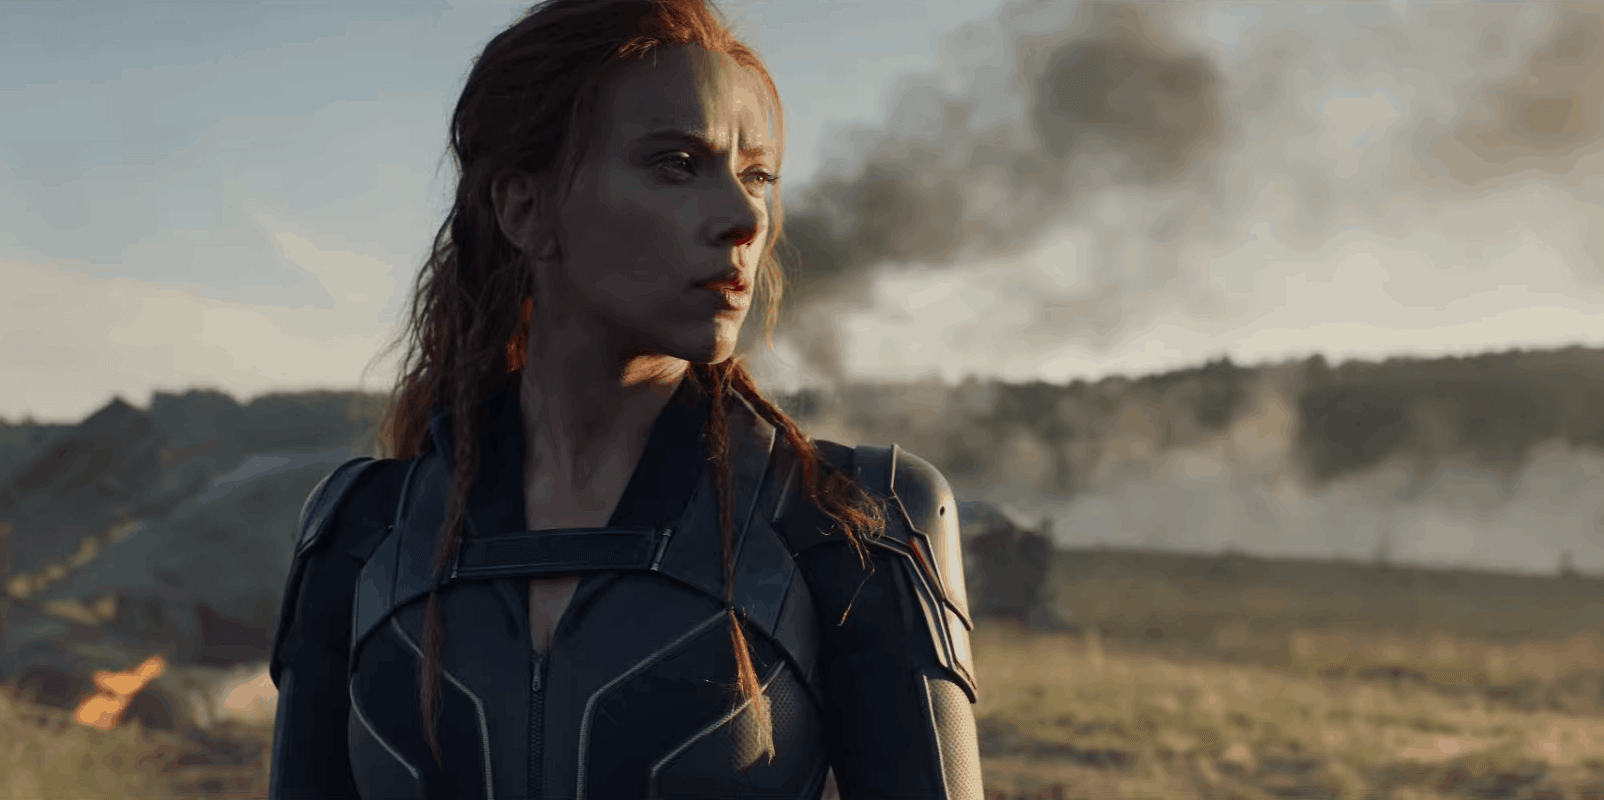 Black Widow Trailer Featured new suit